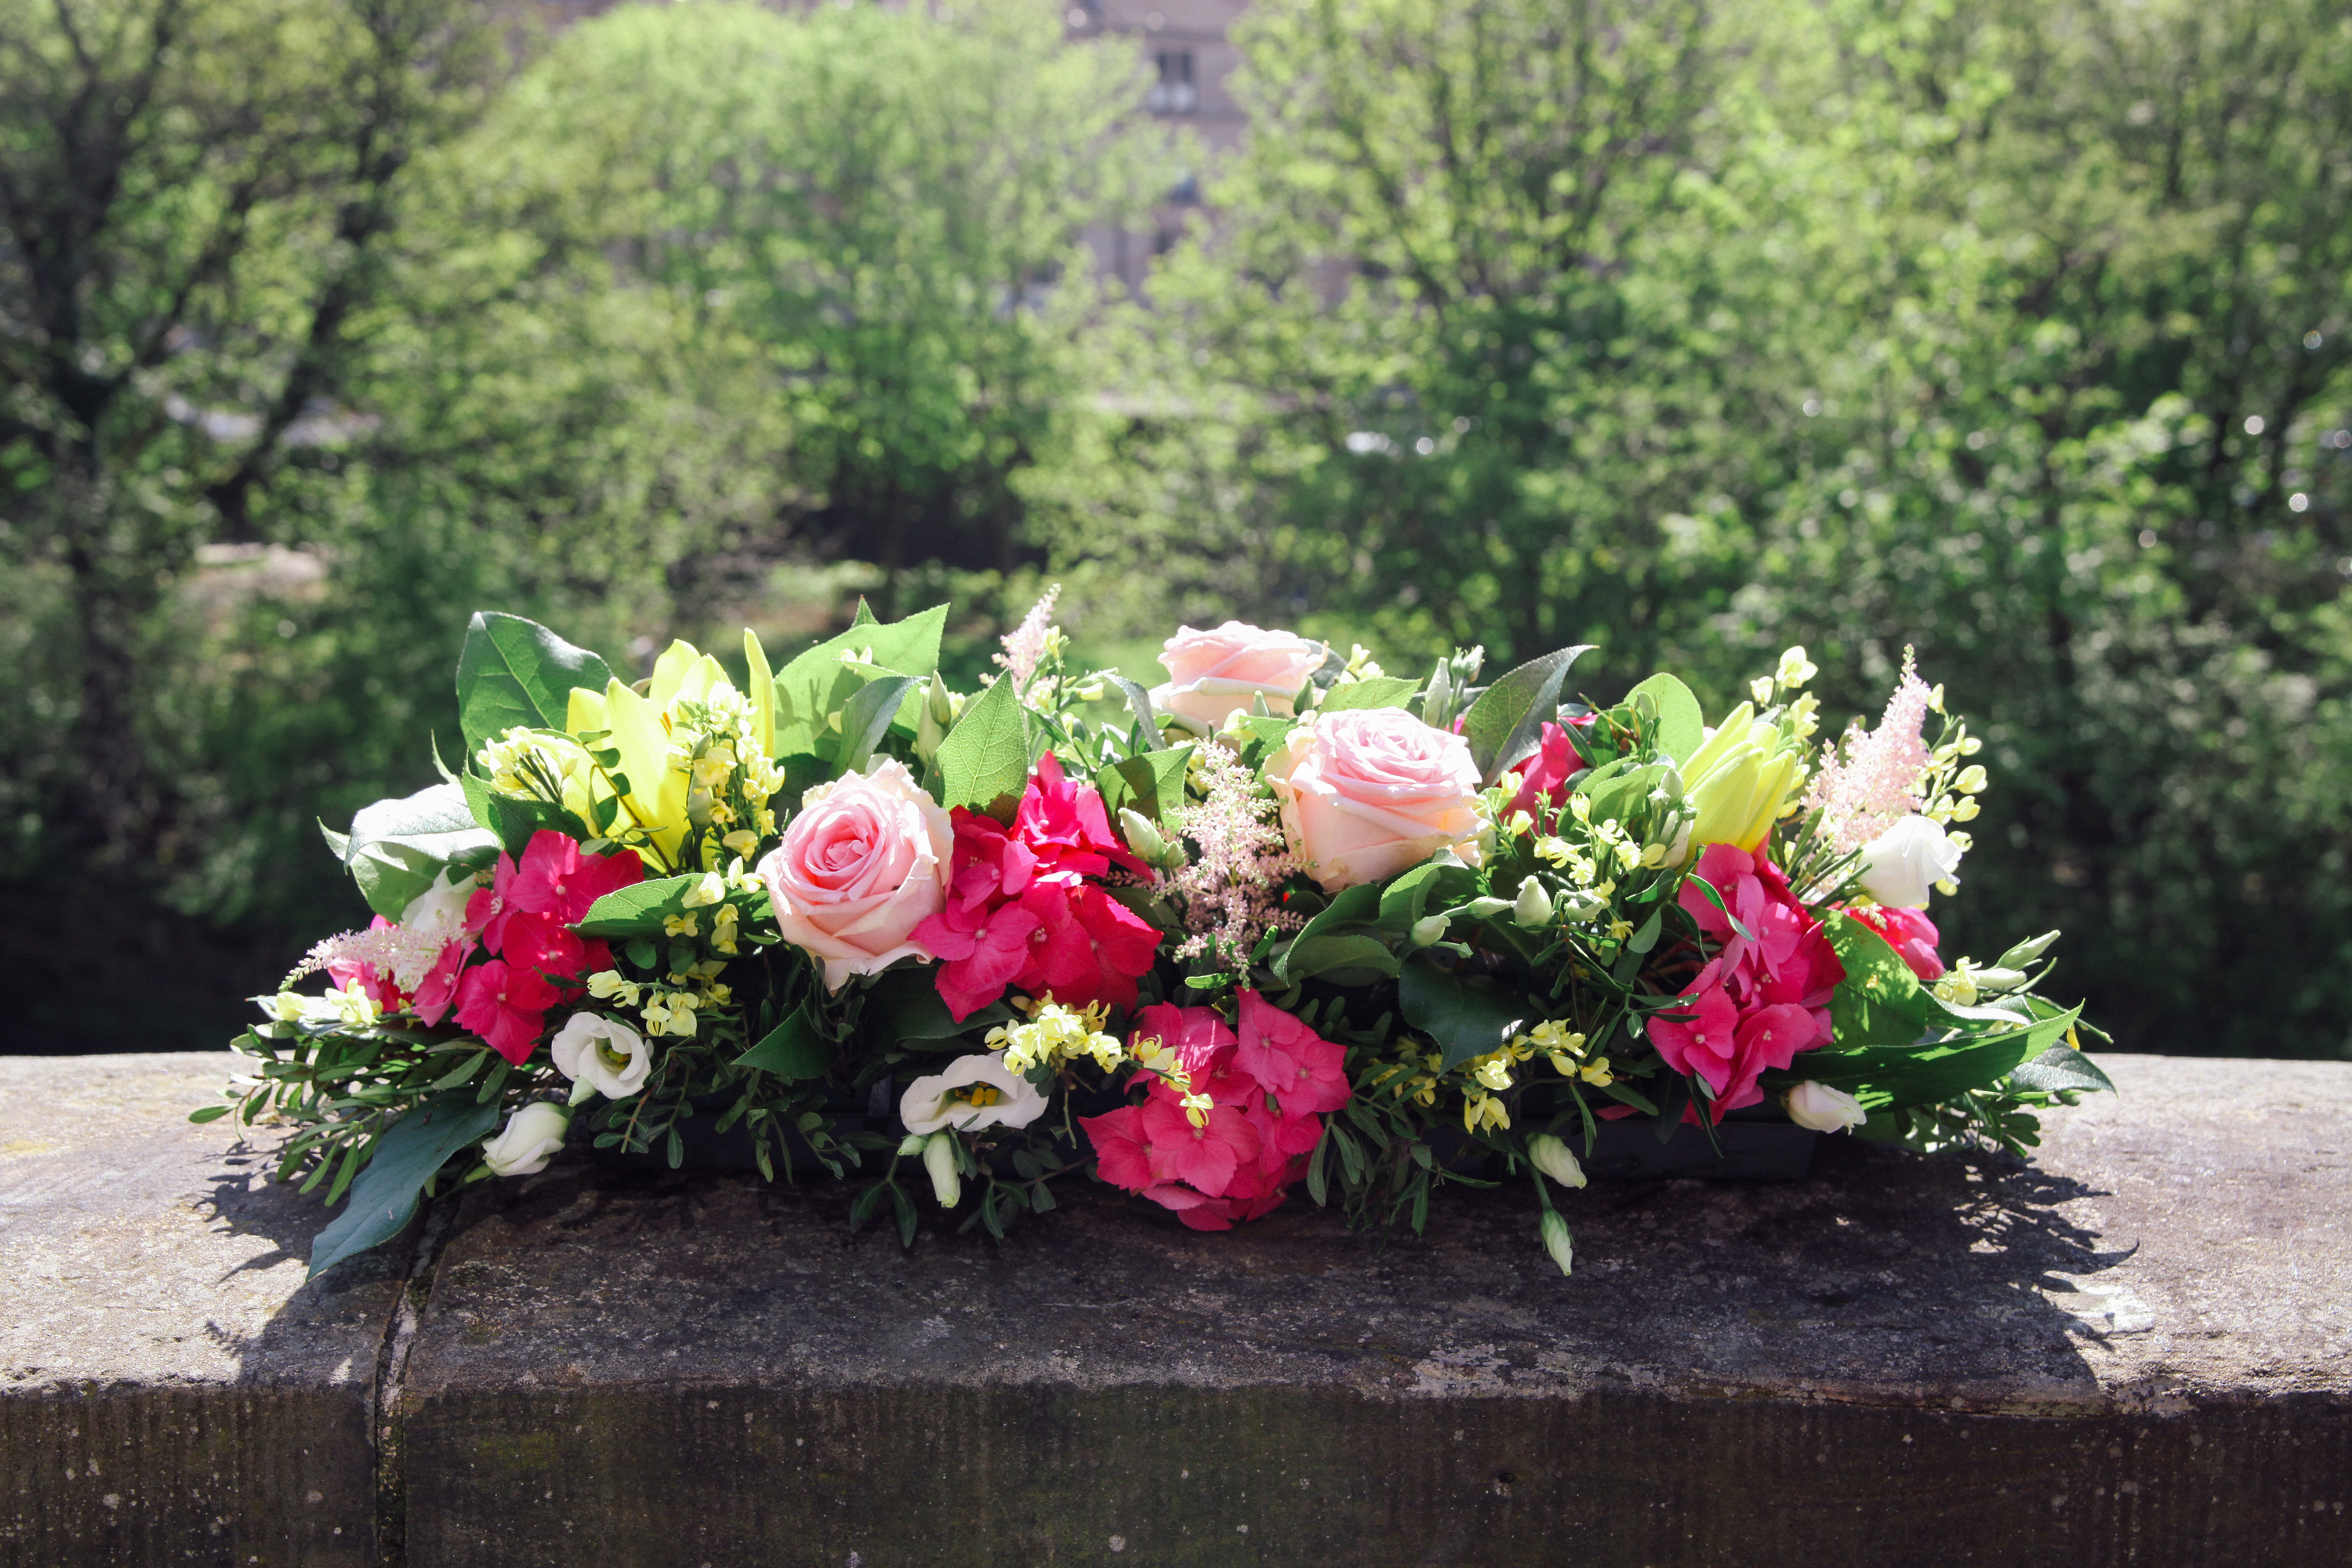 Funeral flowers roots fruits flowers glasgow funeral flowers edit image slider free website tools izmirmasajfo Gallery